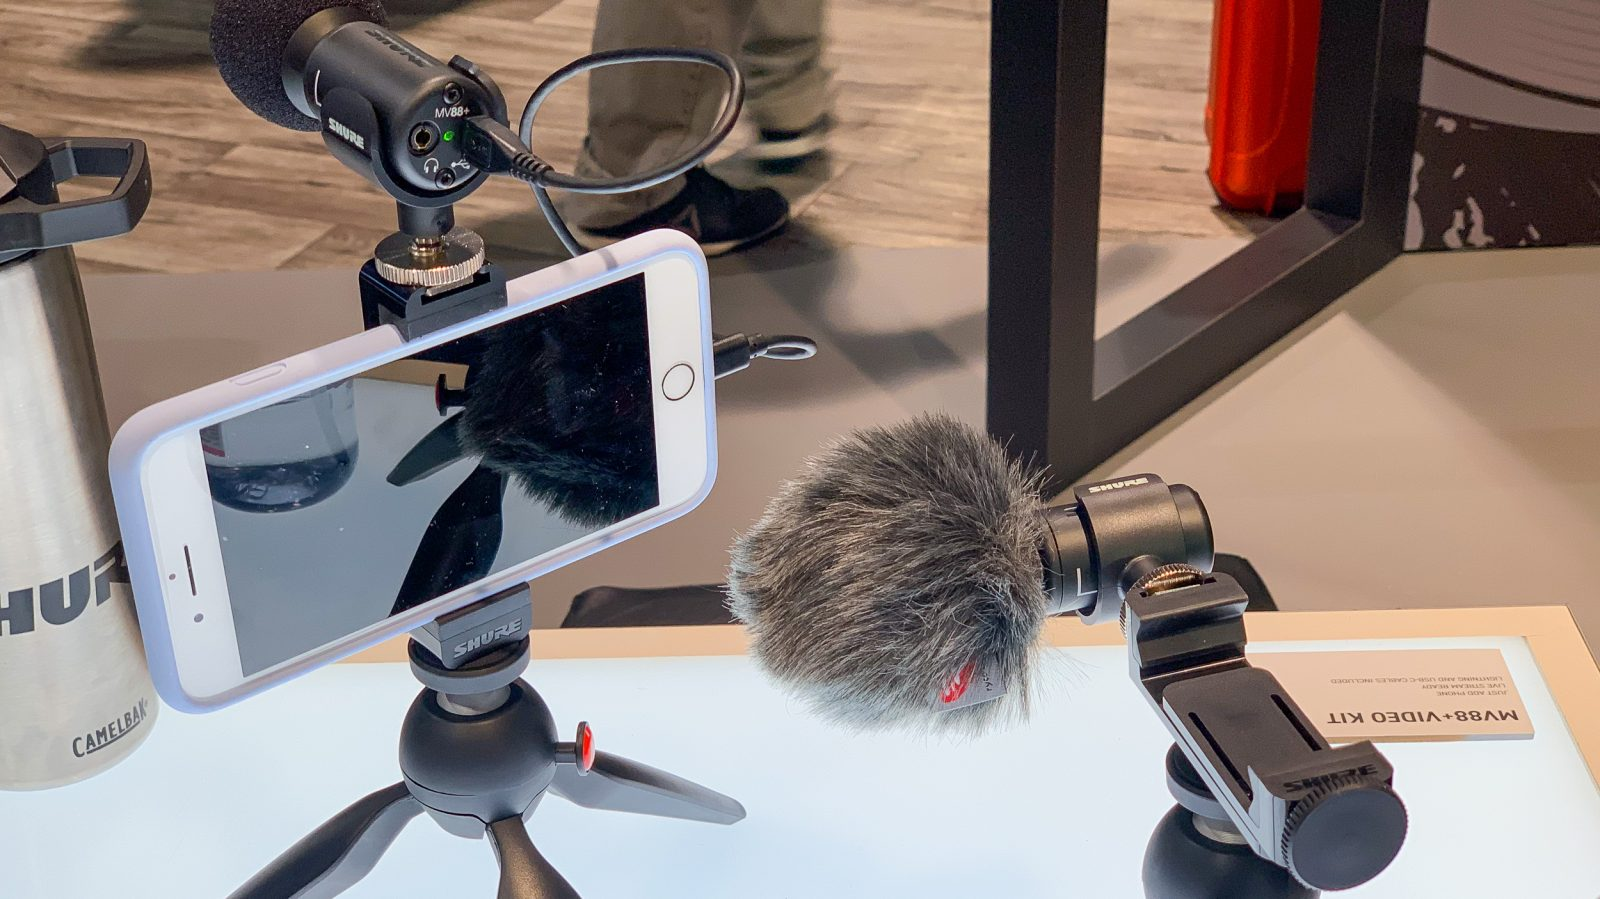 Video: Hands-on with Shure's MV88+ iPhone Video Kit